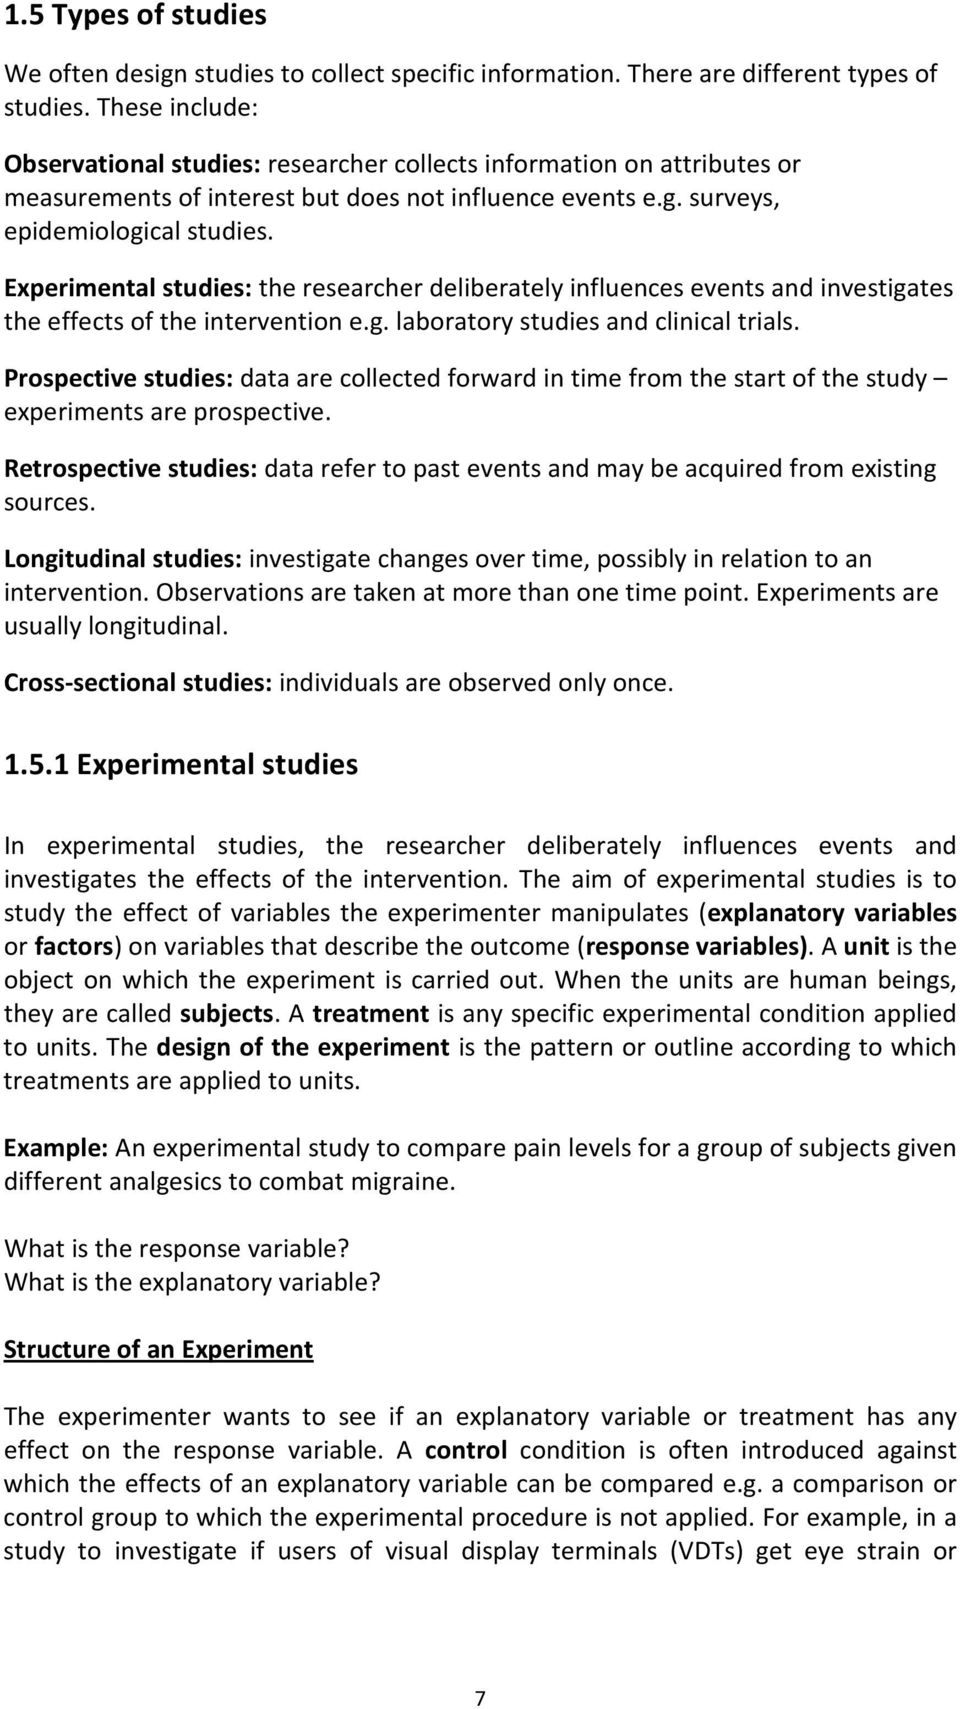 Experimental studies: the researcher deliberately influences events and investigates the effects of the intervention e.g. laboratory studies and clinical trials.